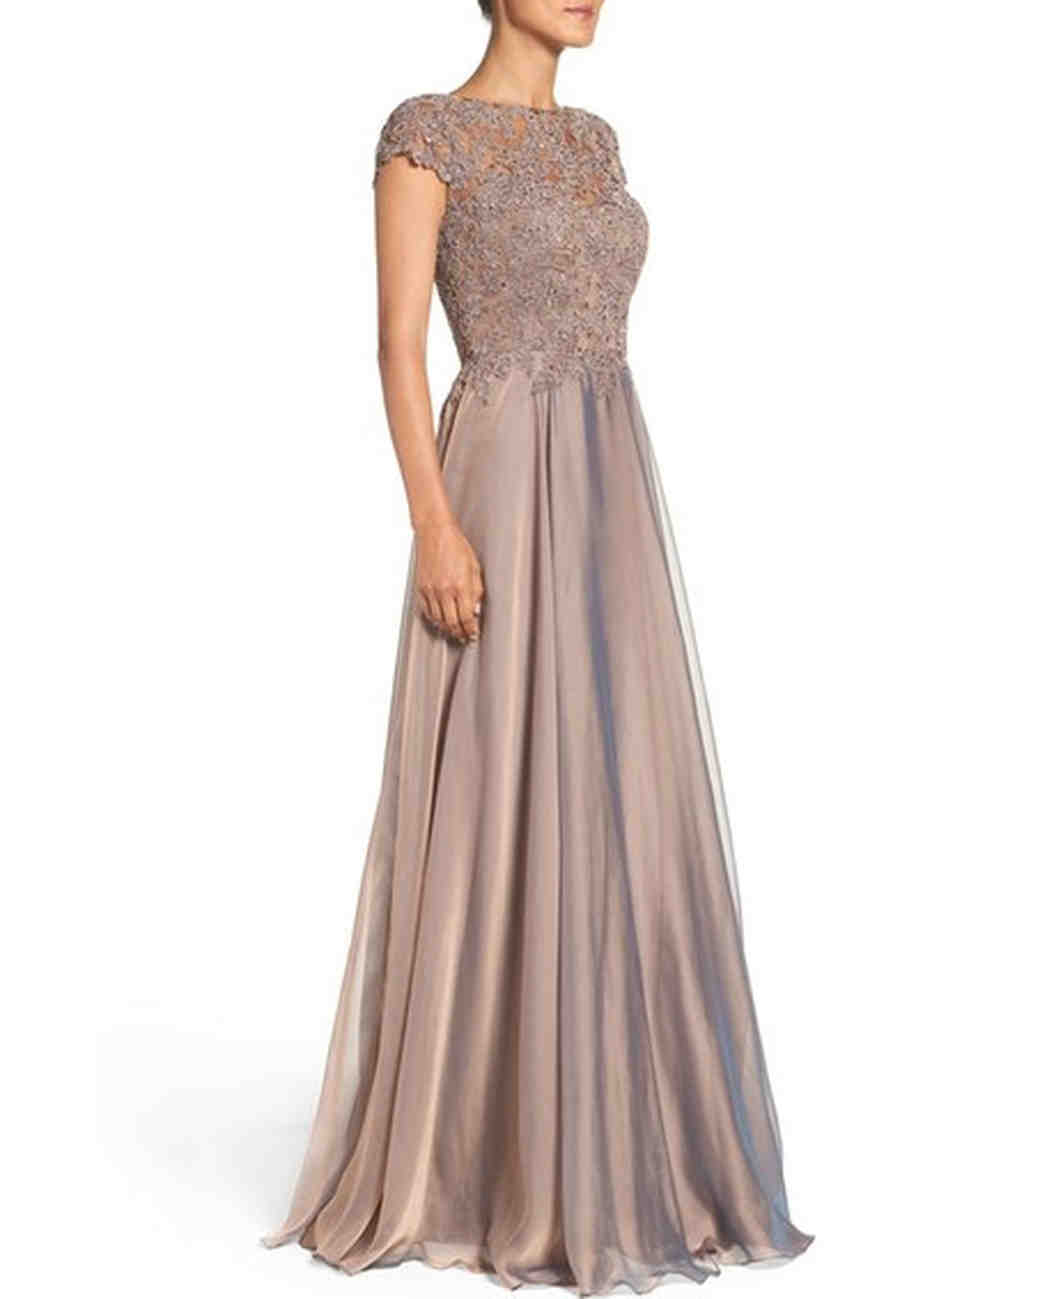 Satin Gown with Short-Sleeved Lace Bodice